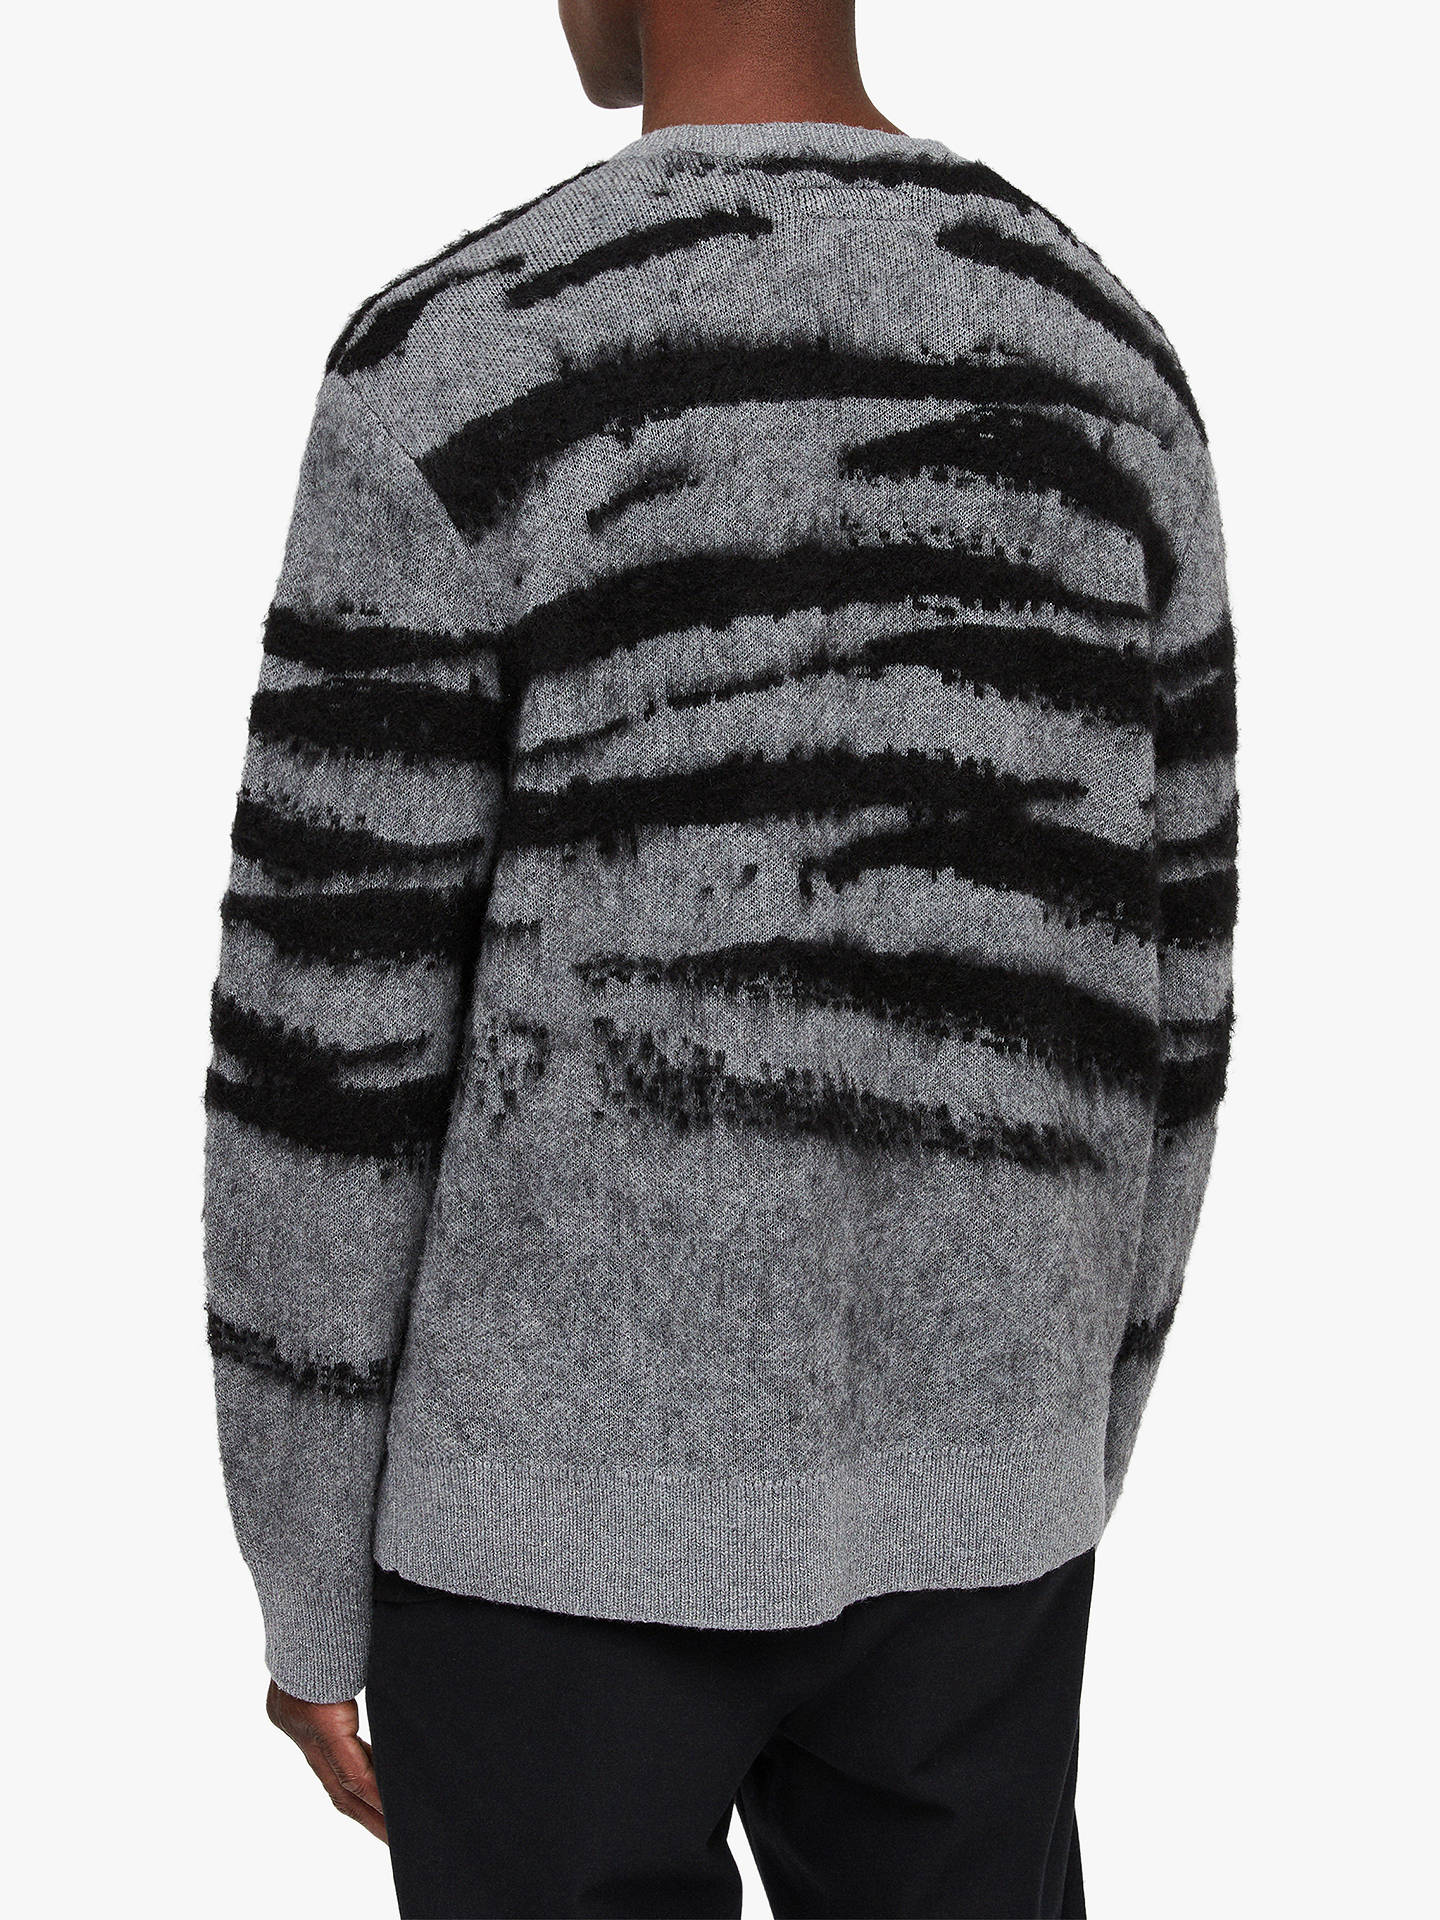 Buy AllSaints Ture Jacquard Camouflage Jumper, Grey Marl/Black, L Online at johnlewis.com